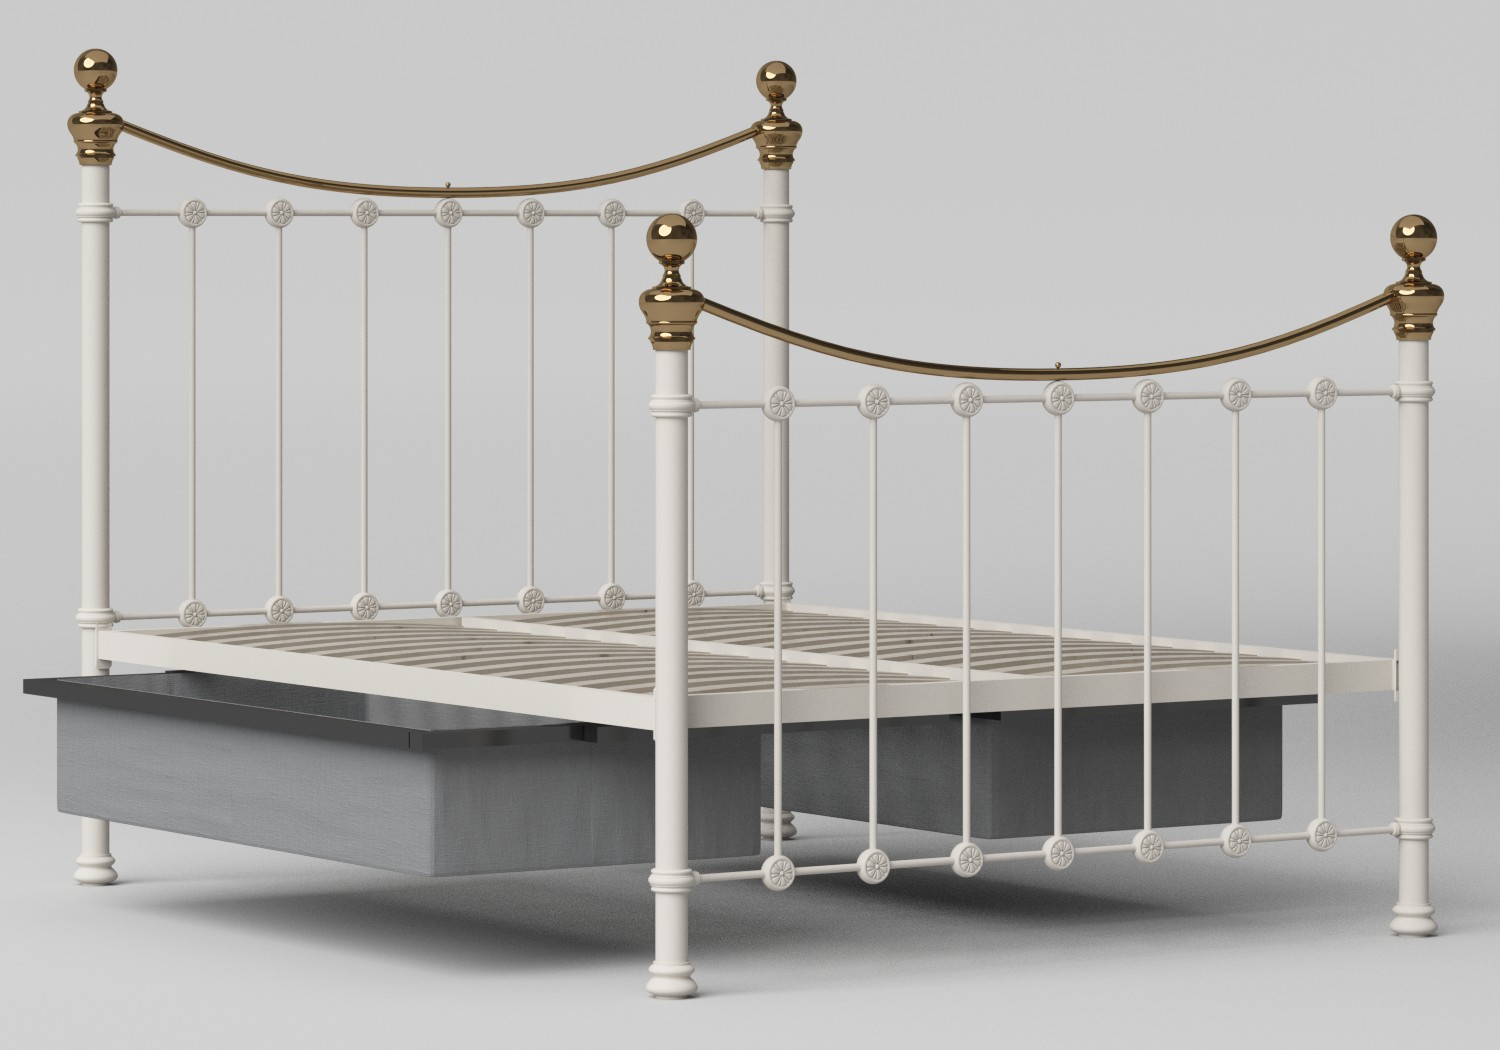 Selkirk Iron/Metal Bed in Glossy Ivory with Brass details shown with underbed storage